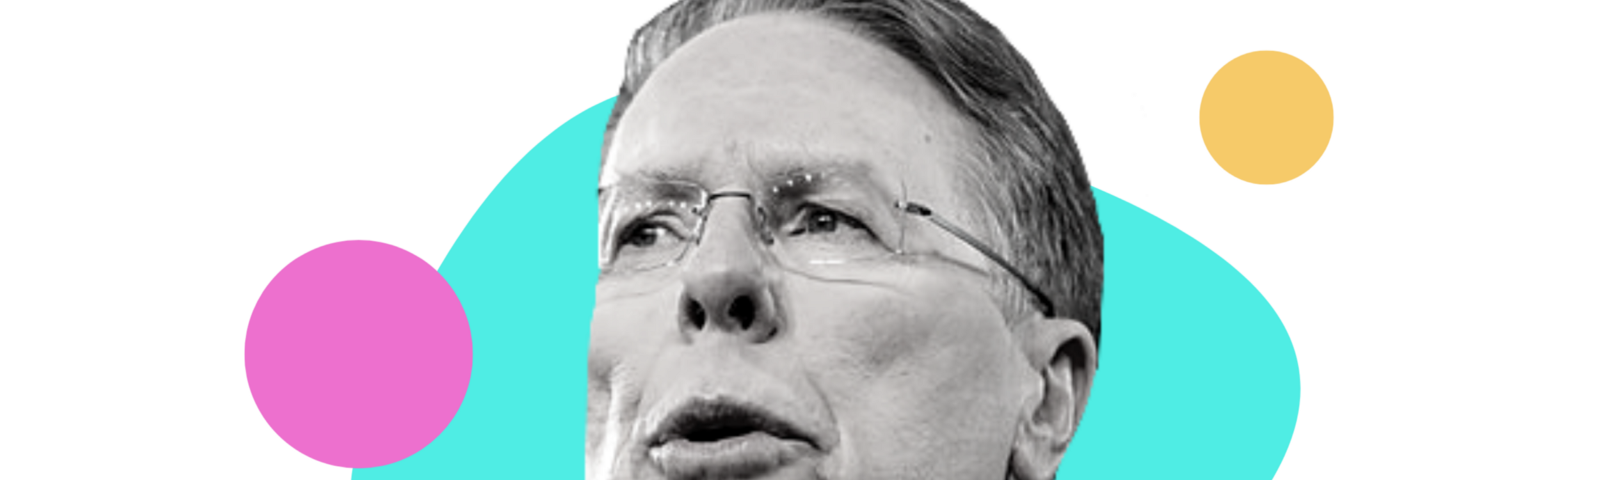 black and white image of Wayne LaPierre with various bold colored shapes around him